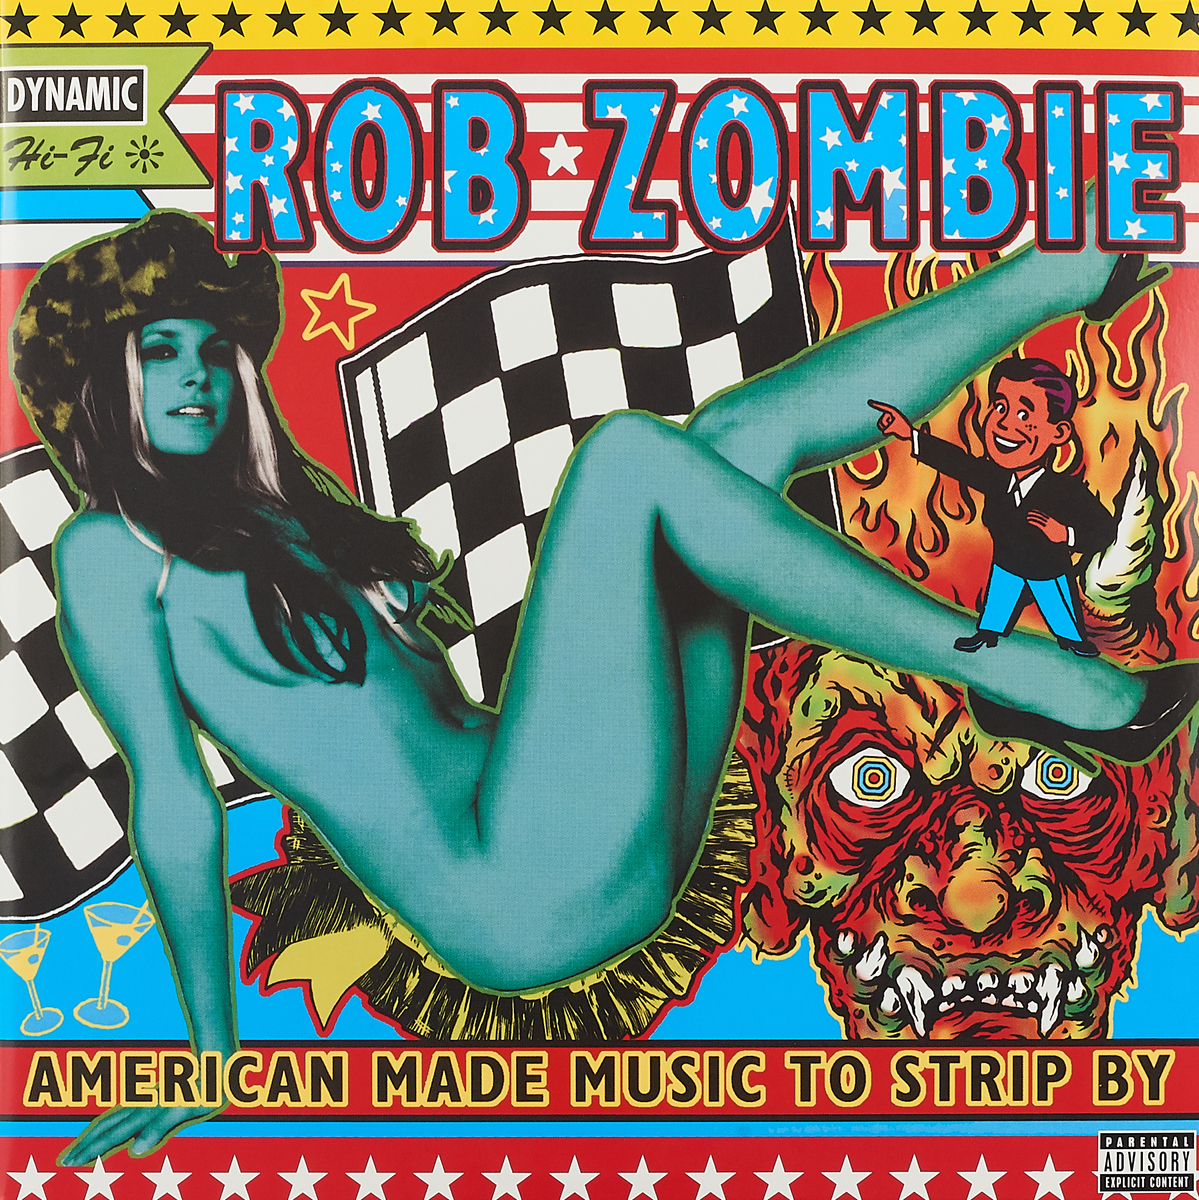 купить Роб Зомби Rob Zombie. American Made Music To Strip By (2 LP) онлайн